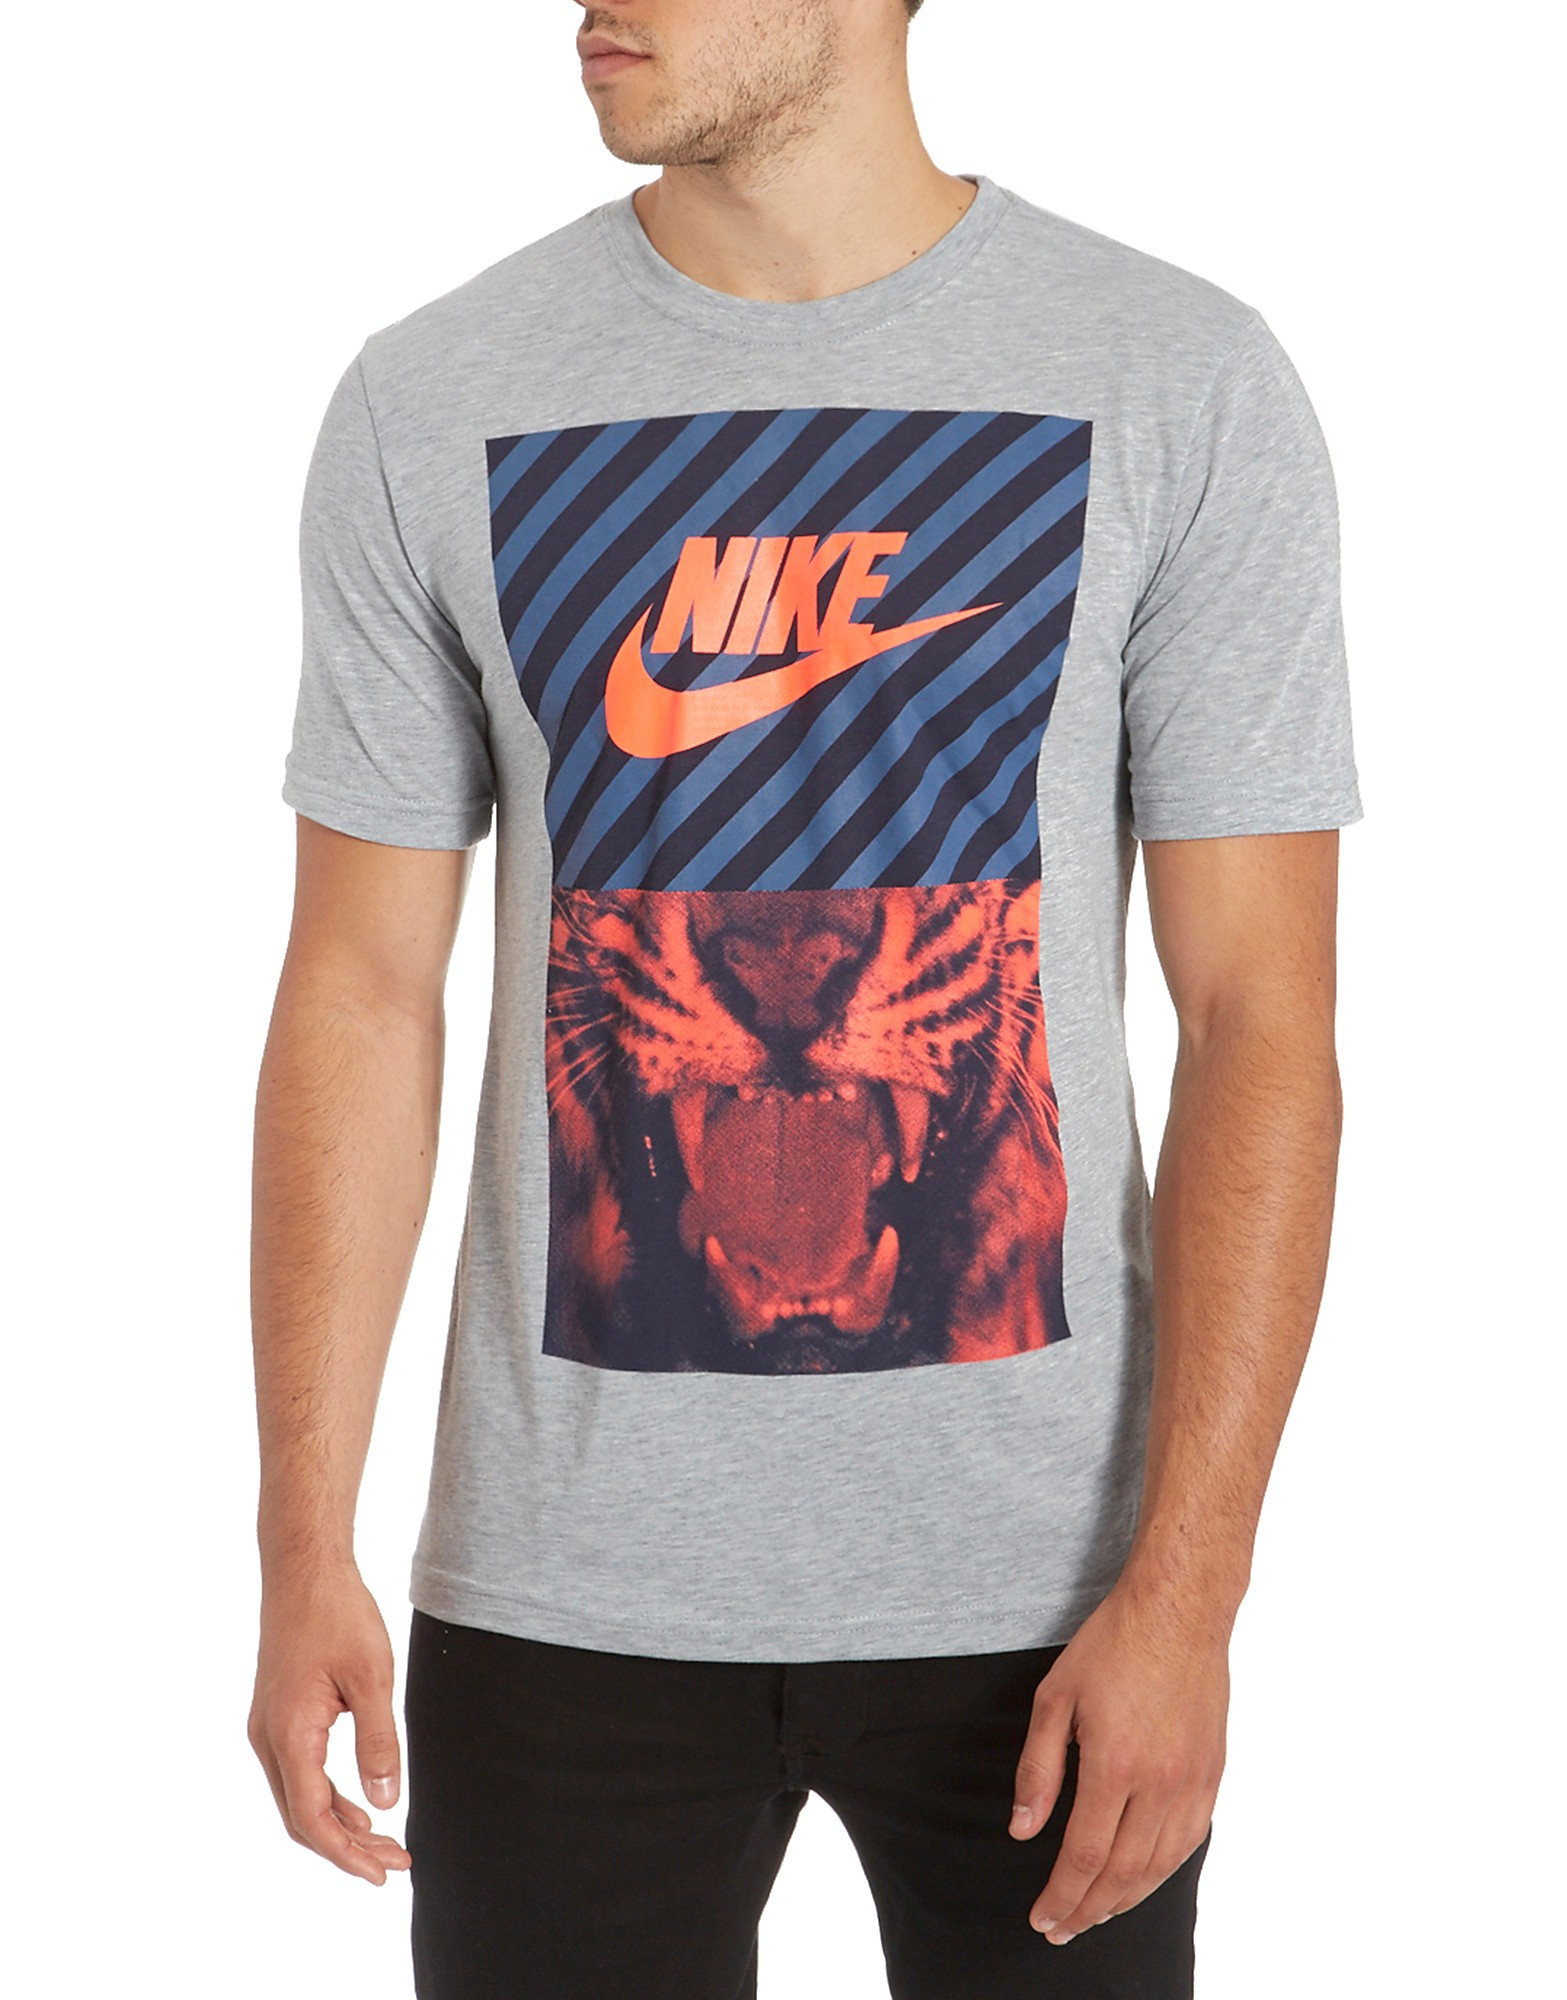 Nike Tiger Hazard T-Shirt product image